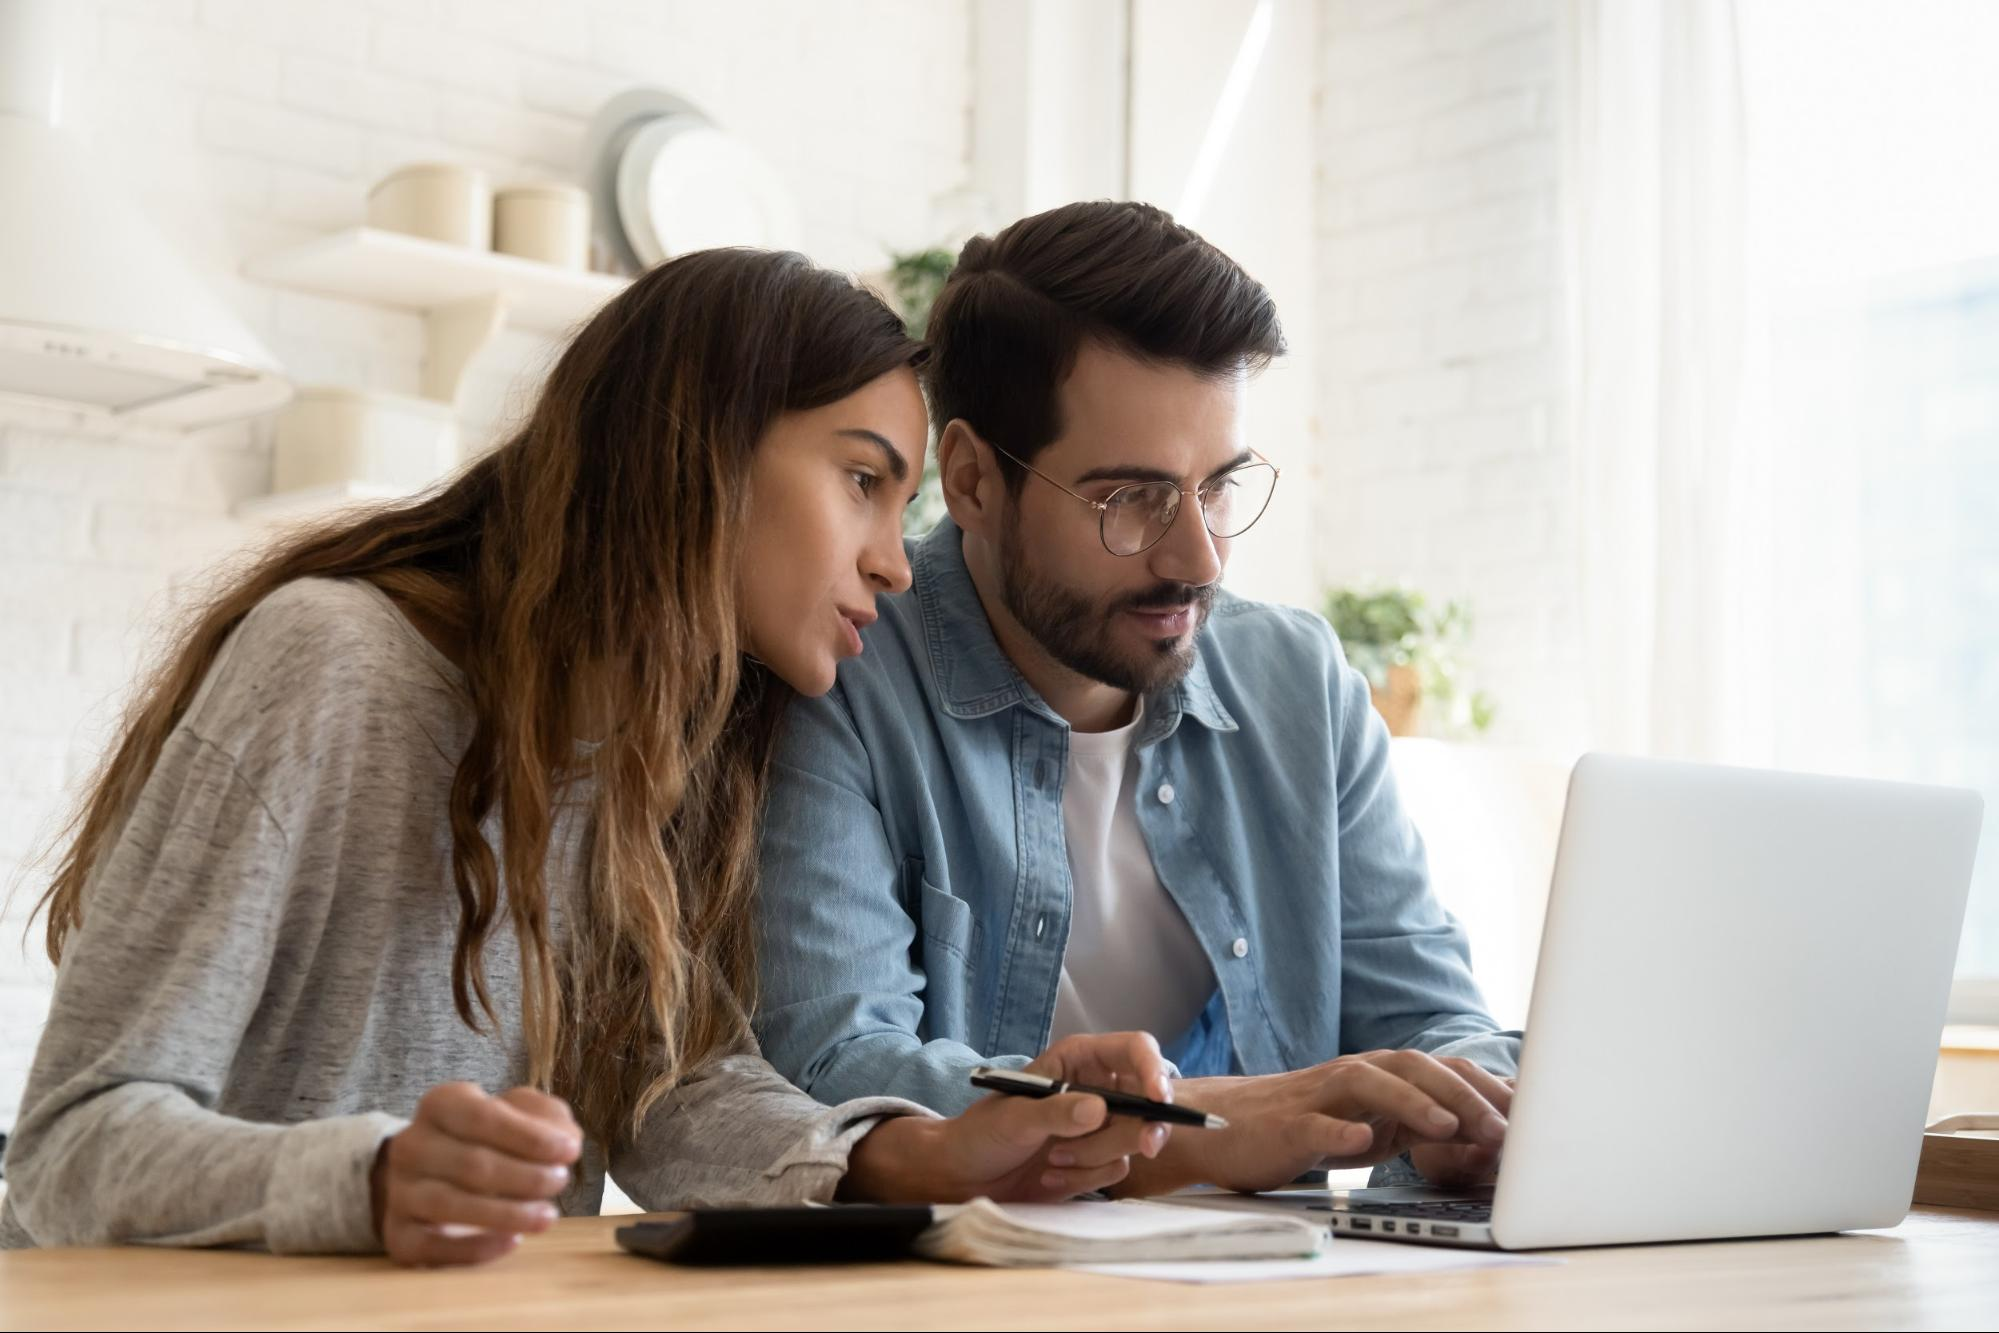 Couple looks at laptop together